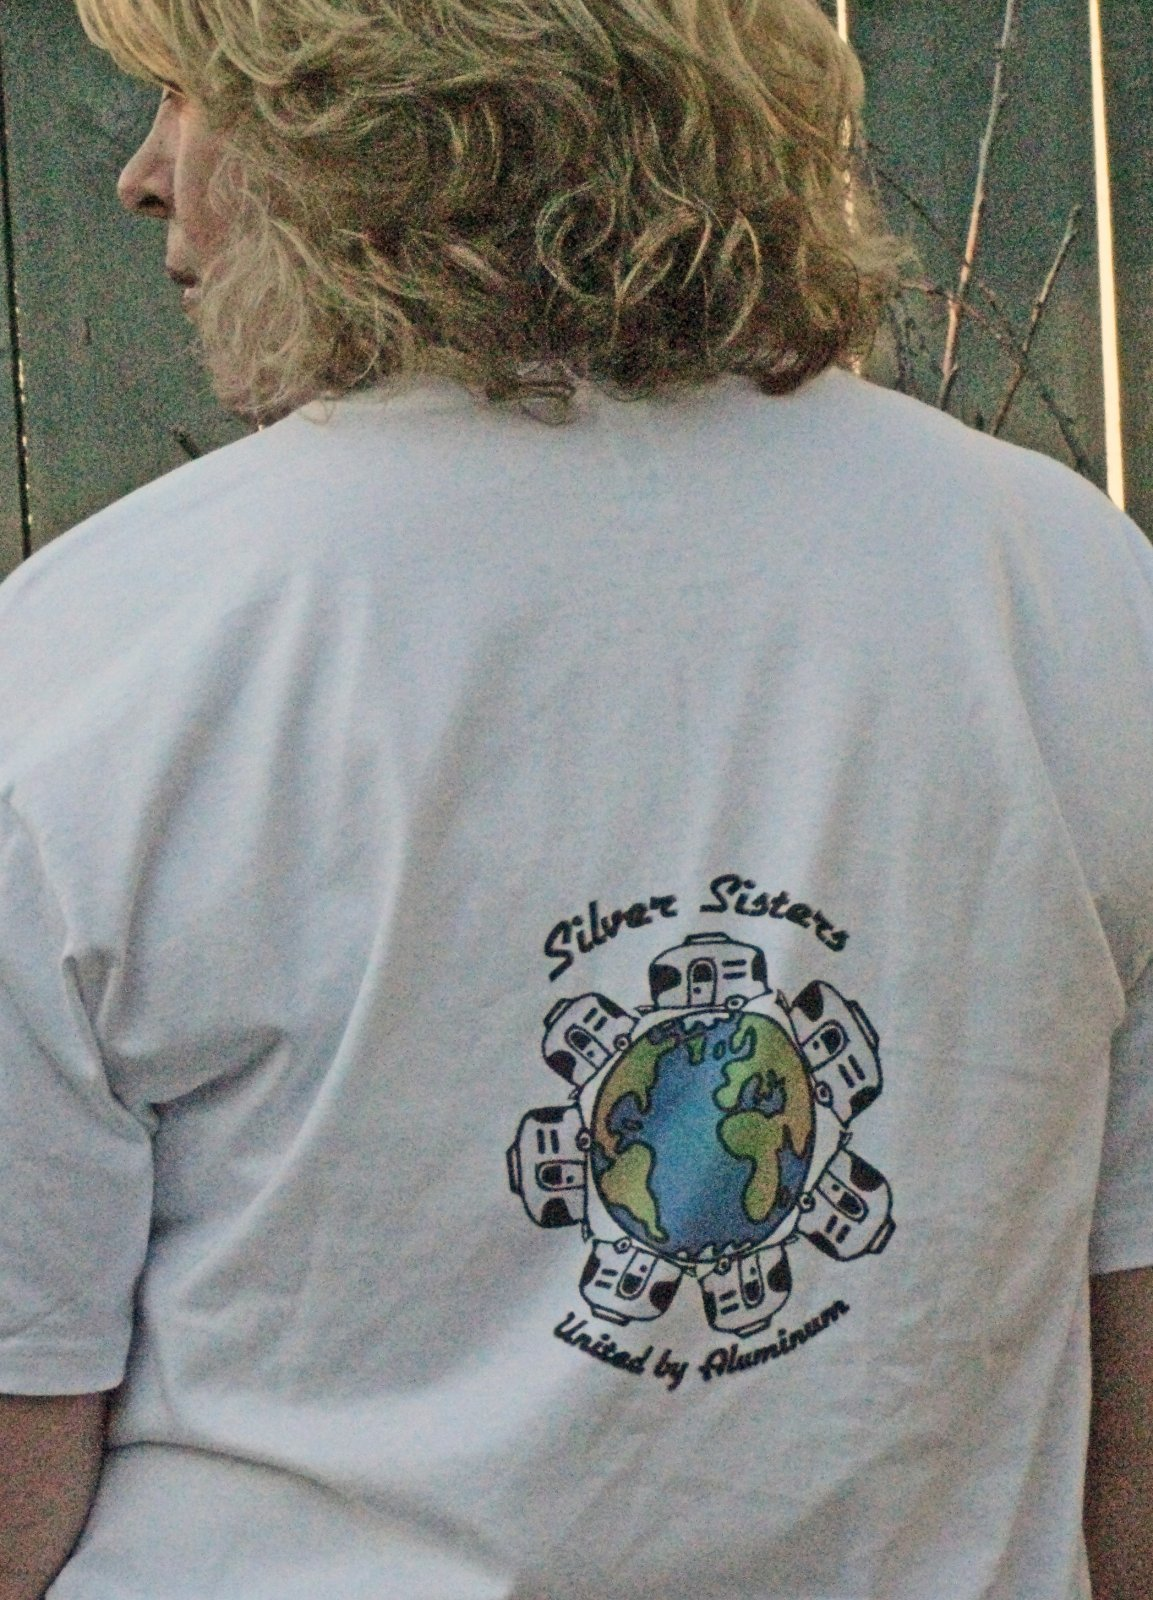 Click image for larger version  Name:silver sisters logo tshirt back.jpg Views:78 Size:384.3 KB ID:74886